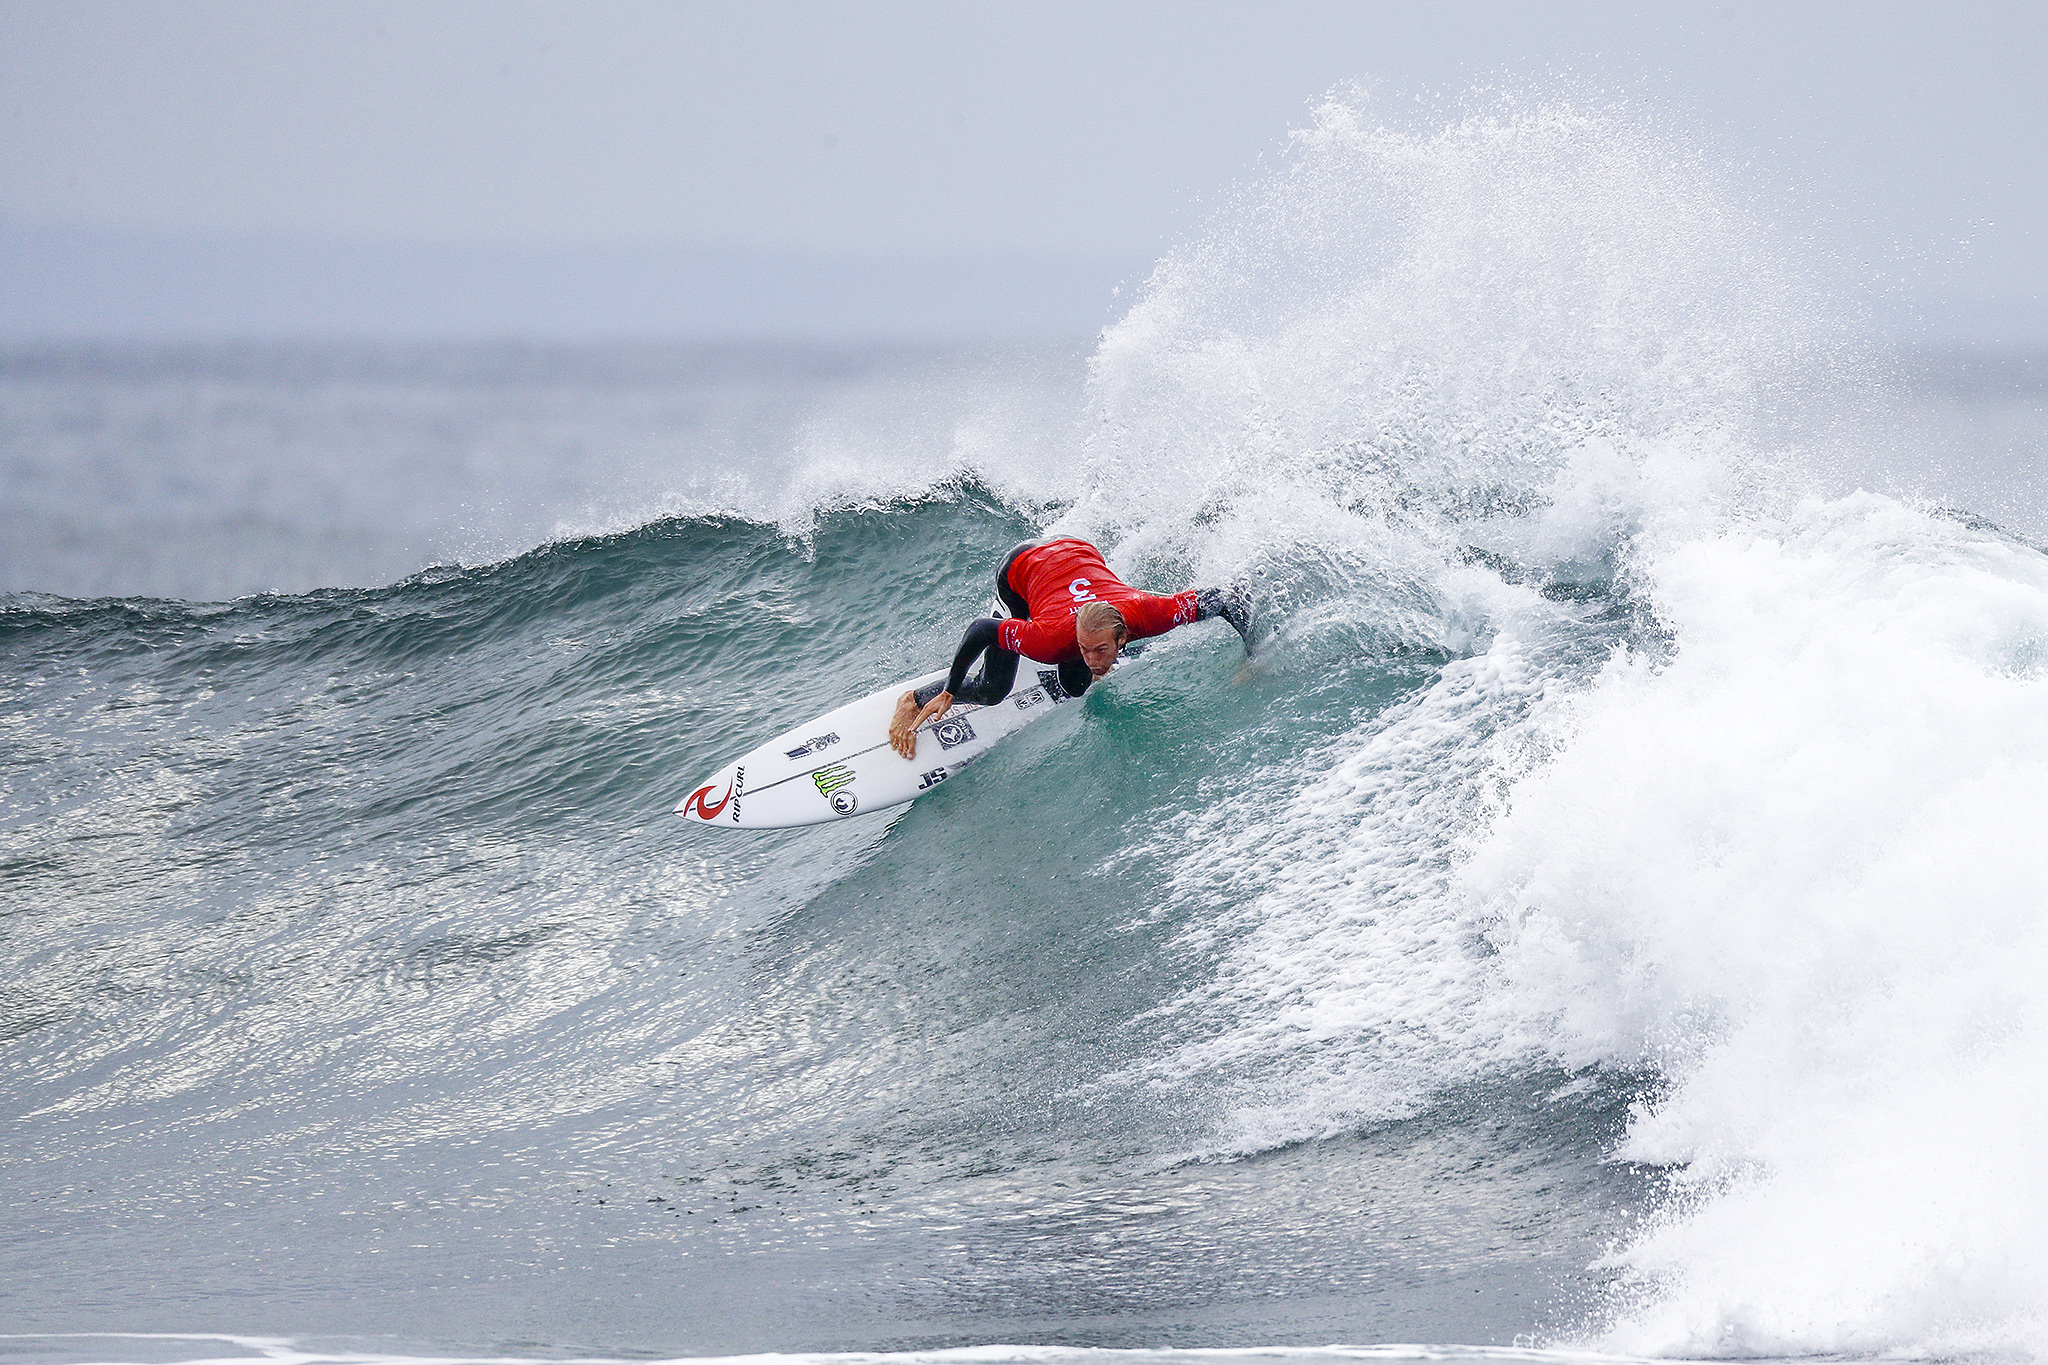 Owen Wright of Australia advanced directly to Round Three by winning Heat 2 of Round One at the Rip Curl Pro Bells Beach.